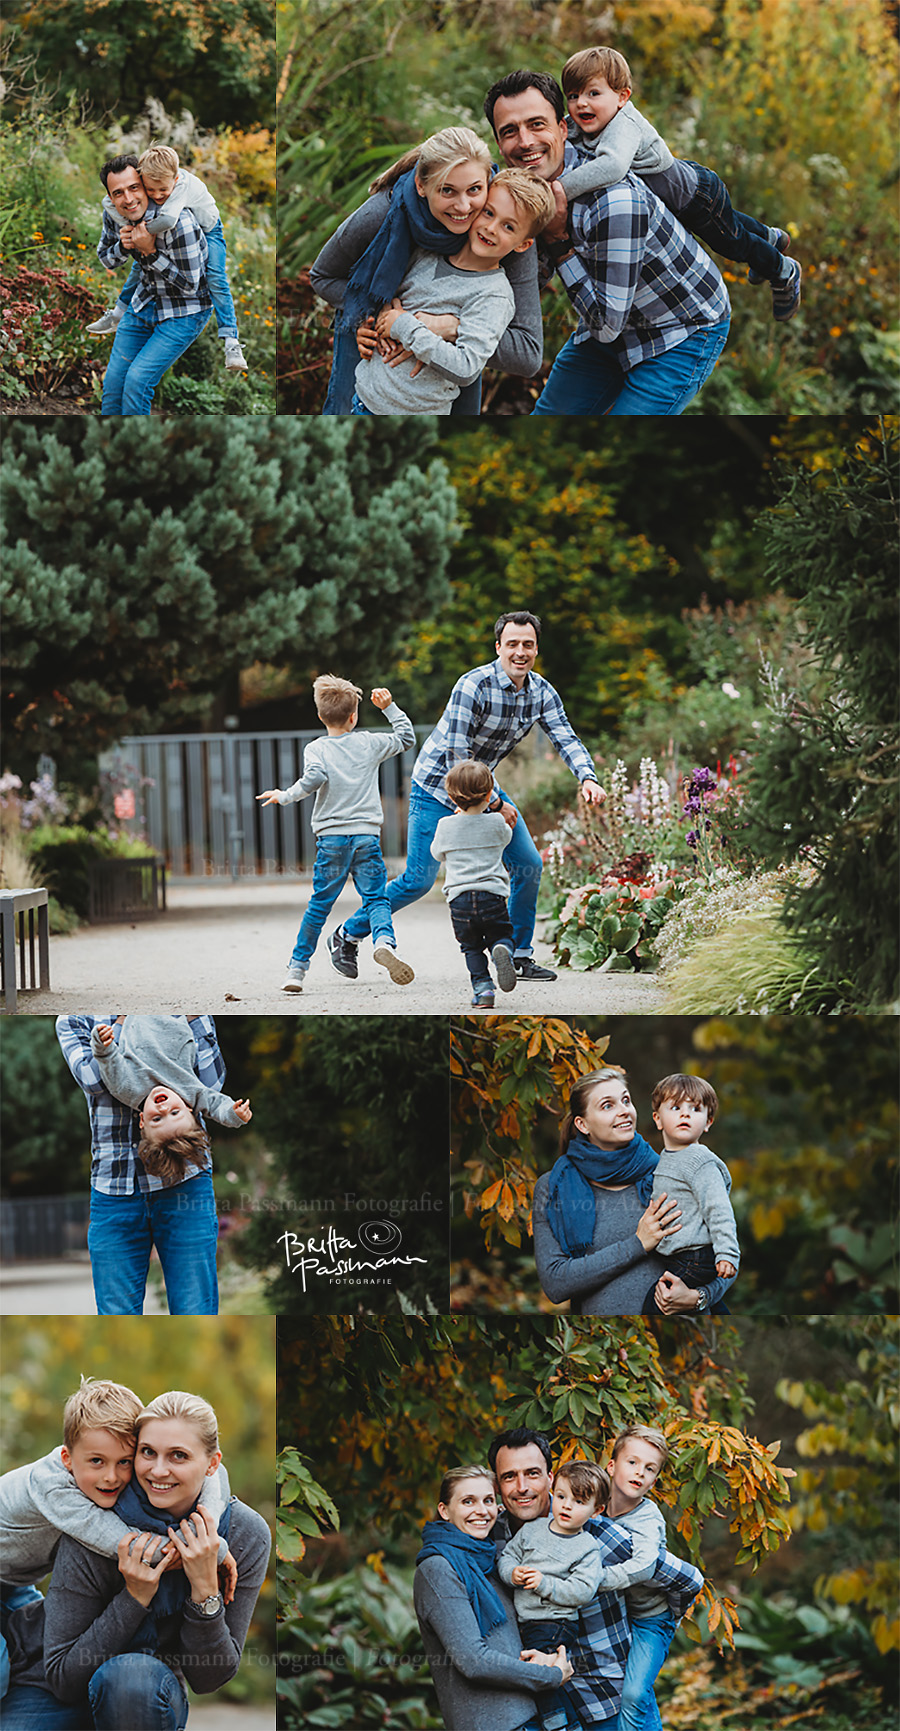 Familienfotos-Dortmund-Fotoshooting-Outdoor-Kinderfotos-Bochum-05